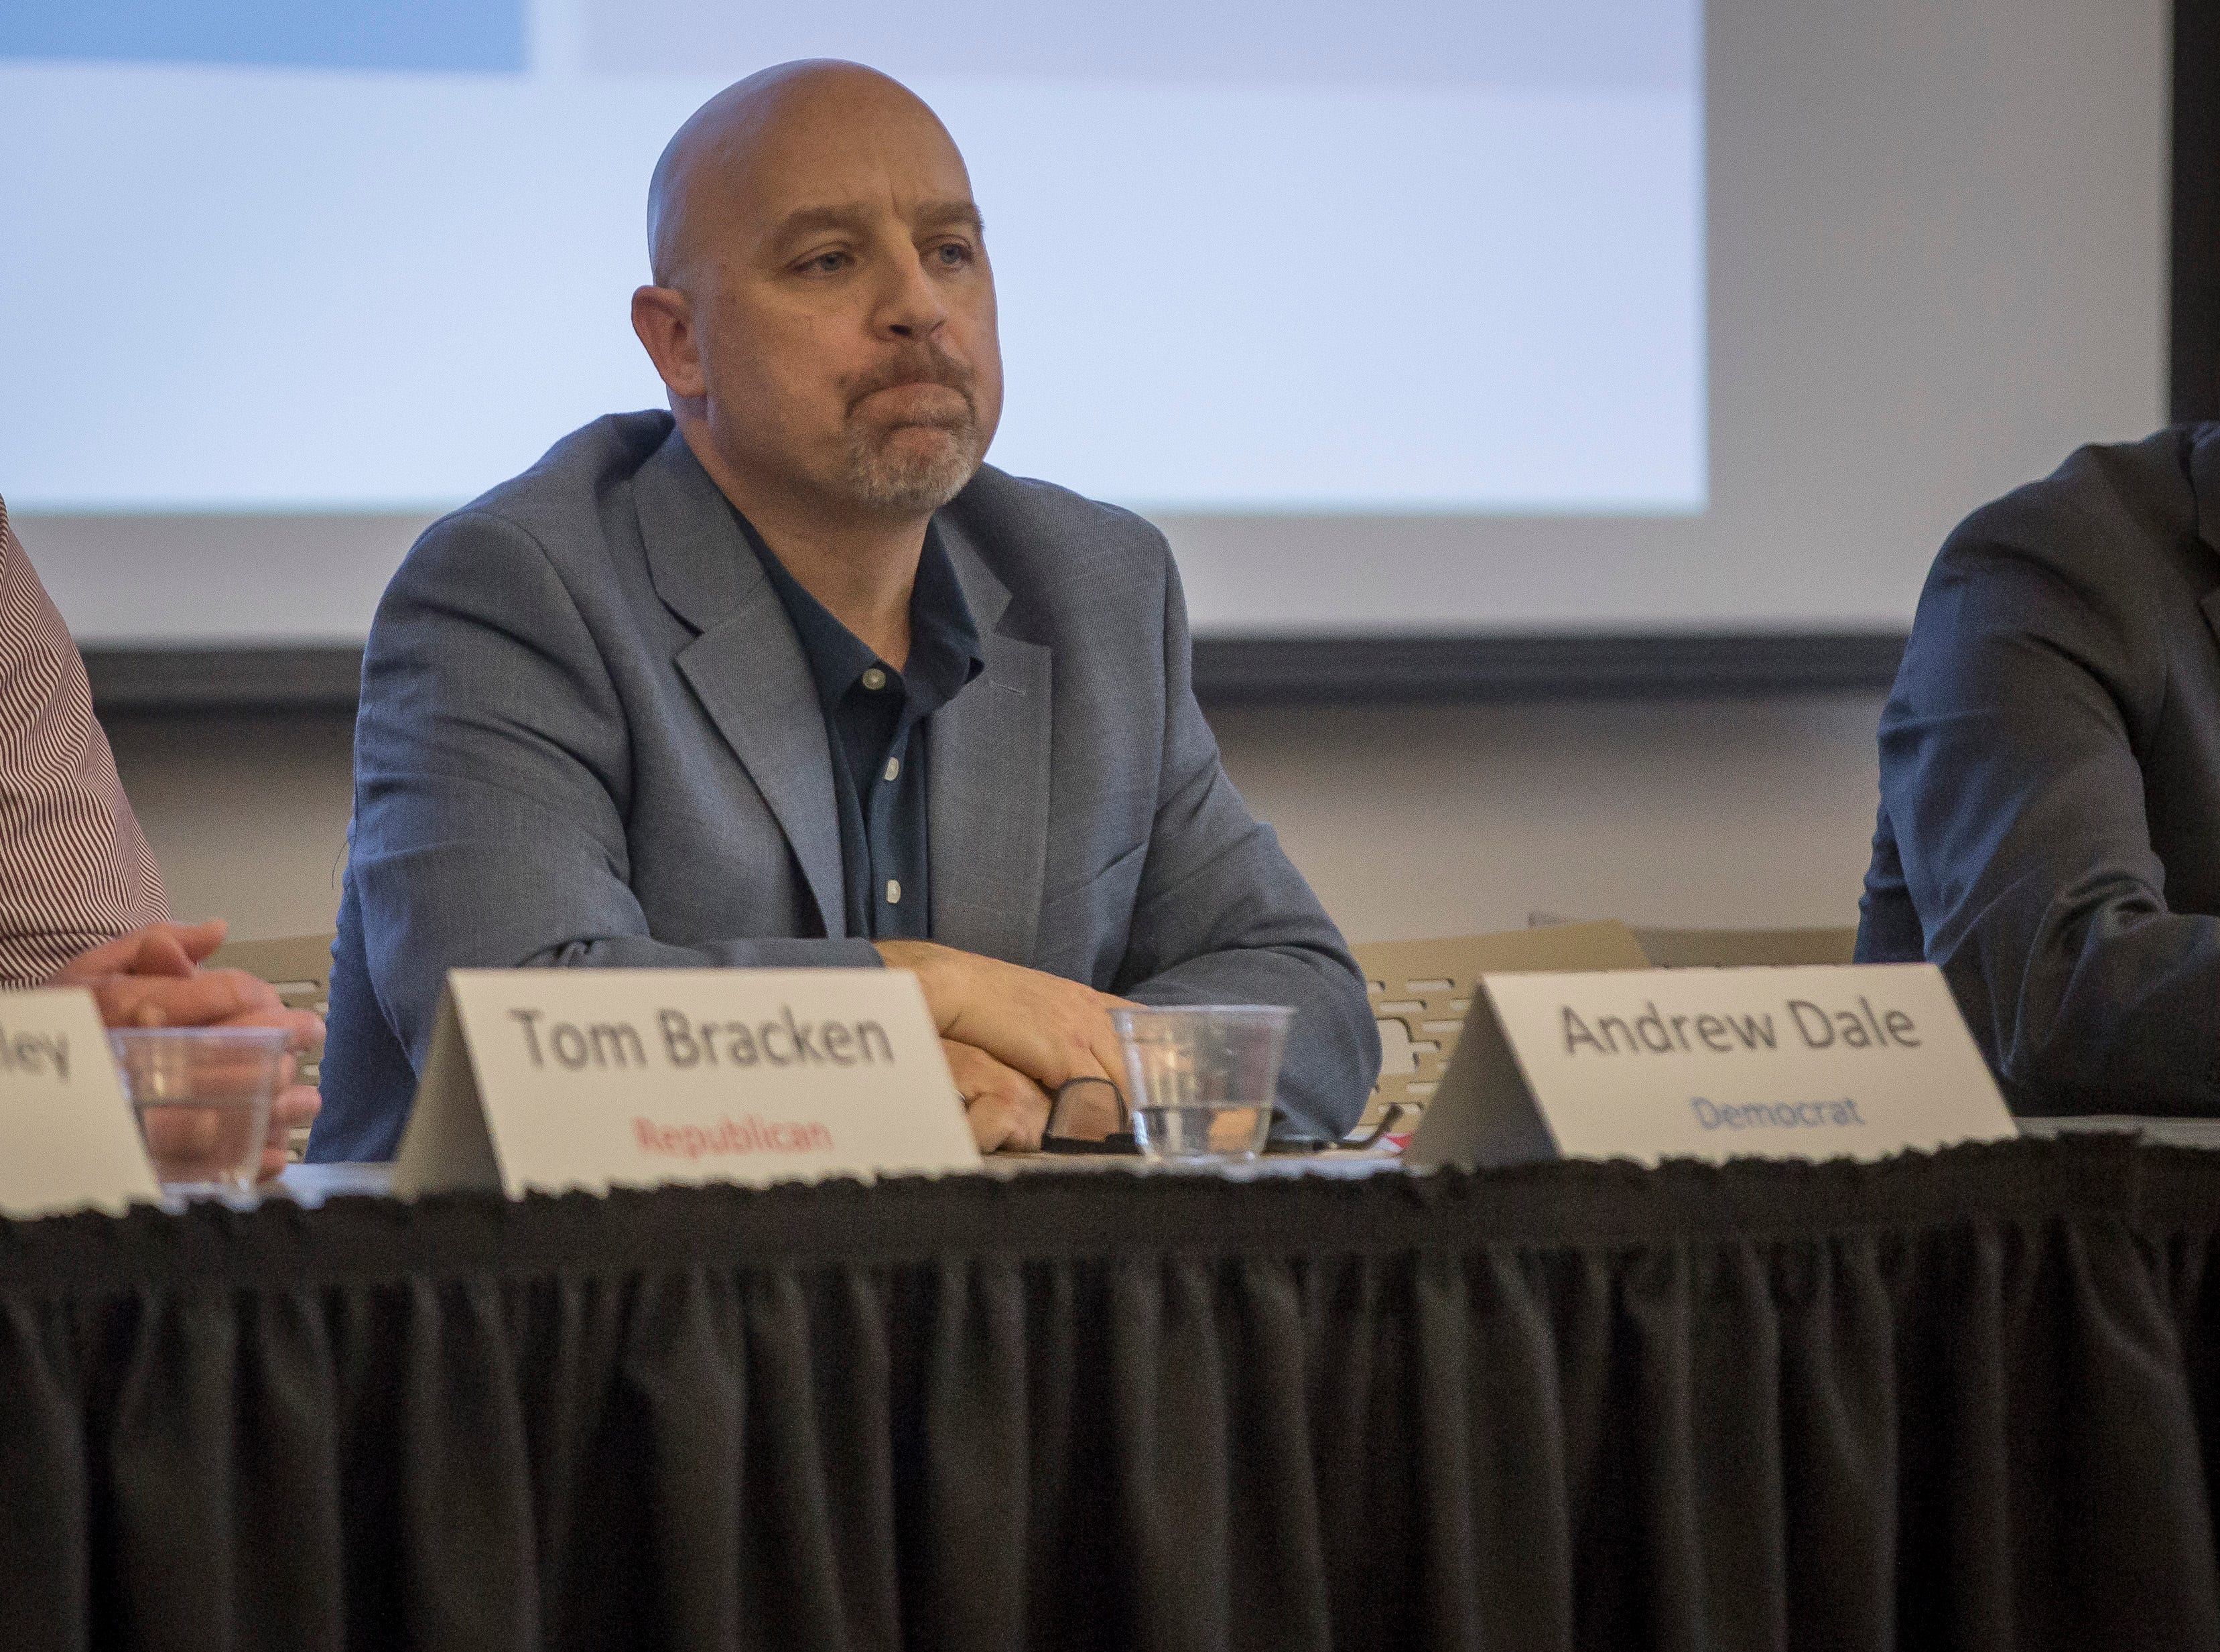 Andrew Dale listens to the questions during the Muncie Mayoral Forum at the IDEA conference on Saturday, March 2 inside the Ball State's student center.